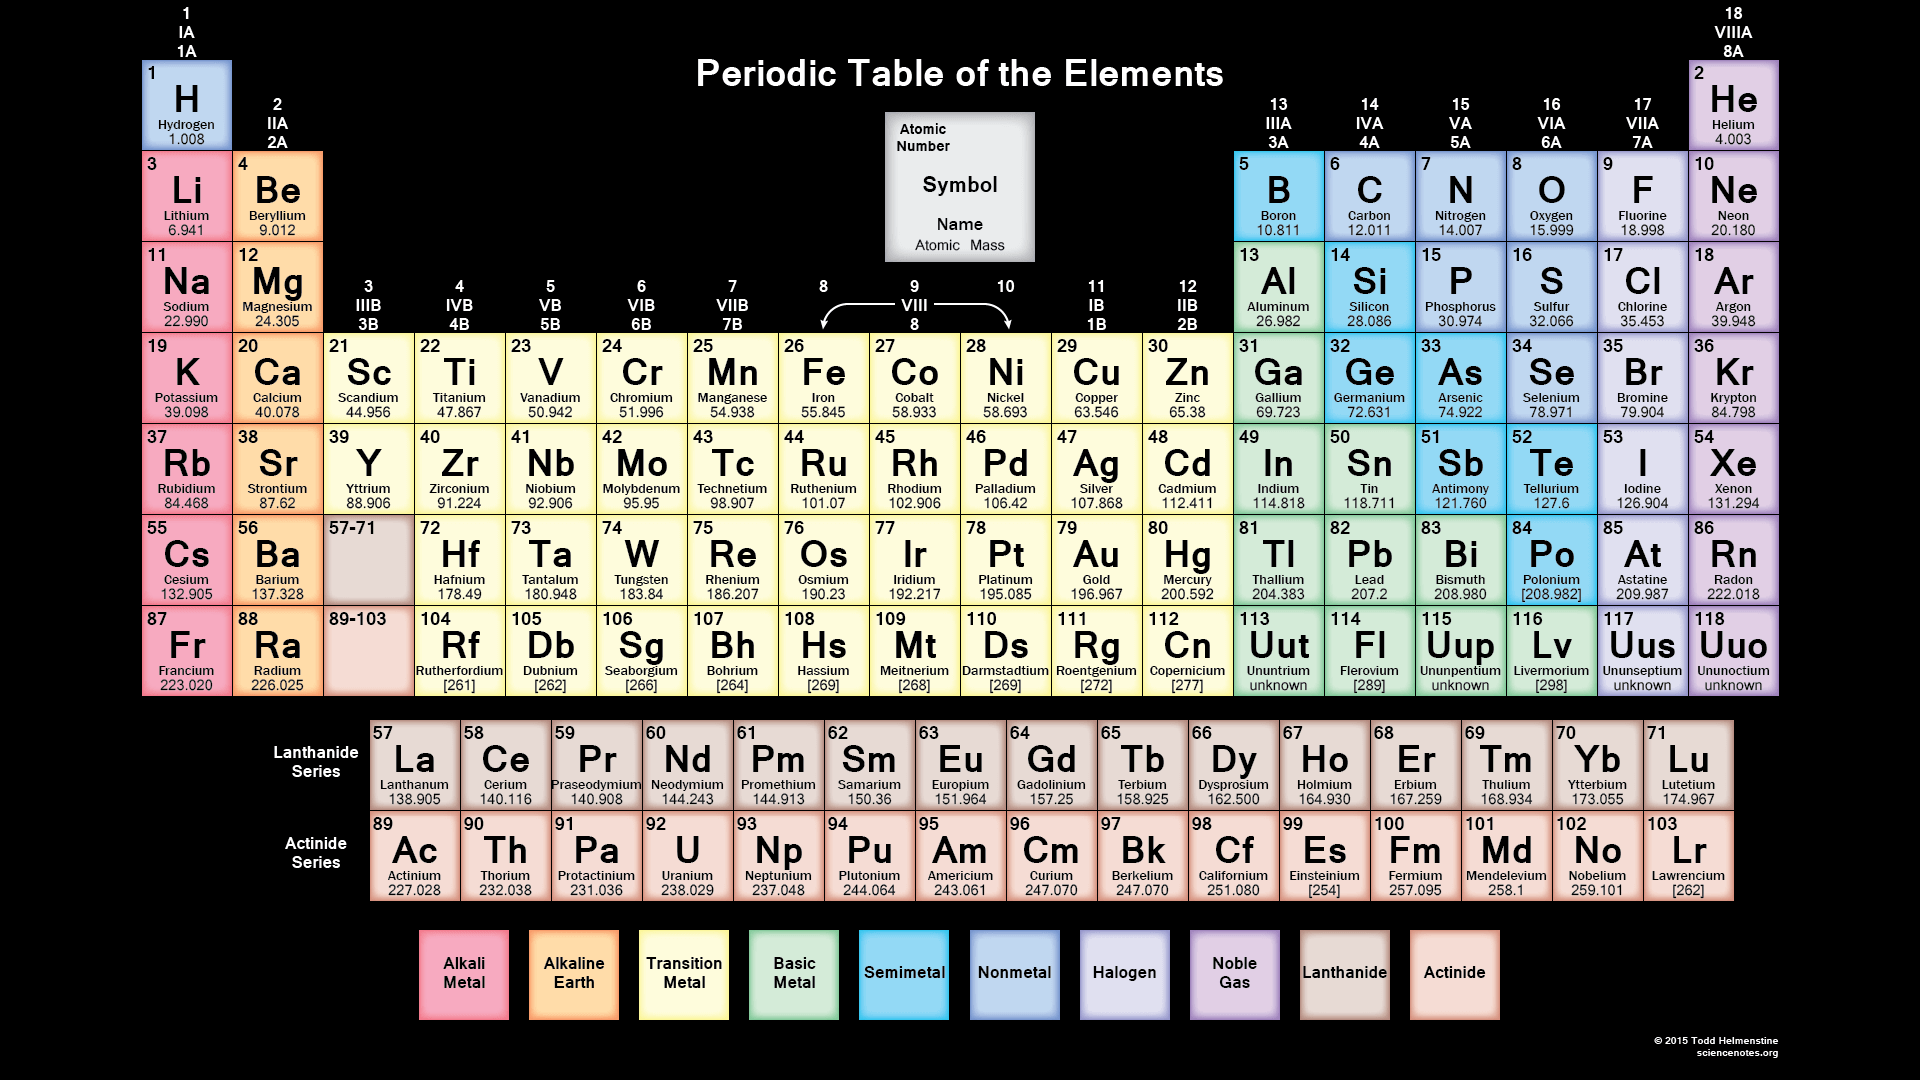 Hd periodic table wallpaper muted colors hd periodic table wallpaper with black background gamestrikefo Gallery